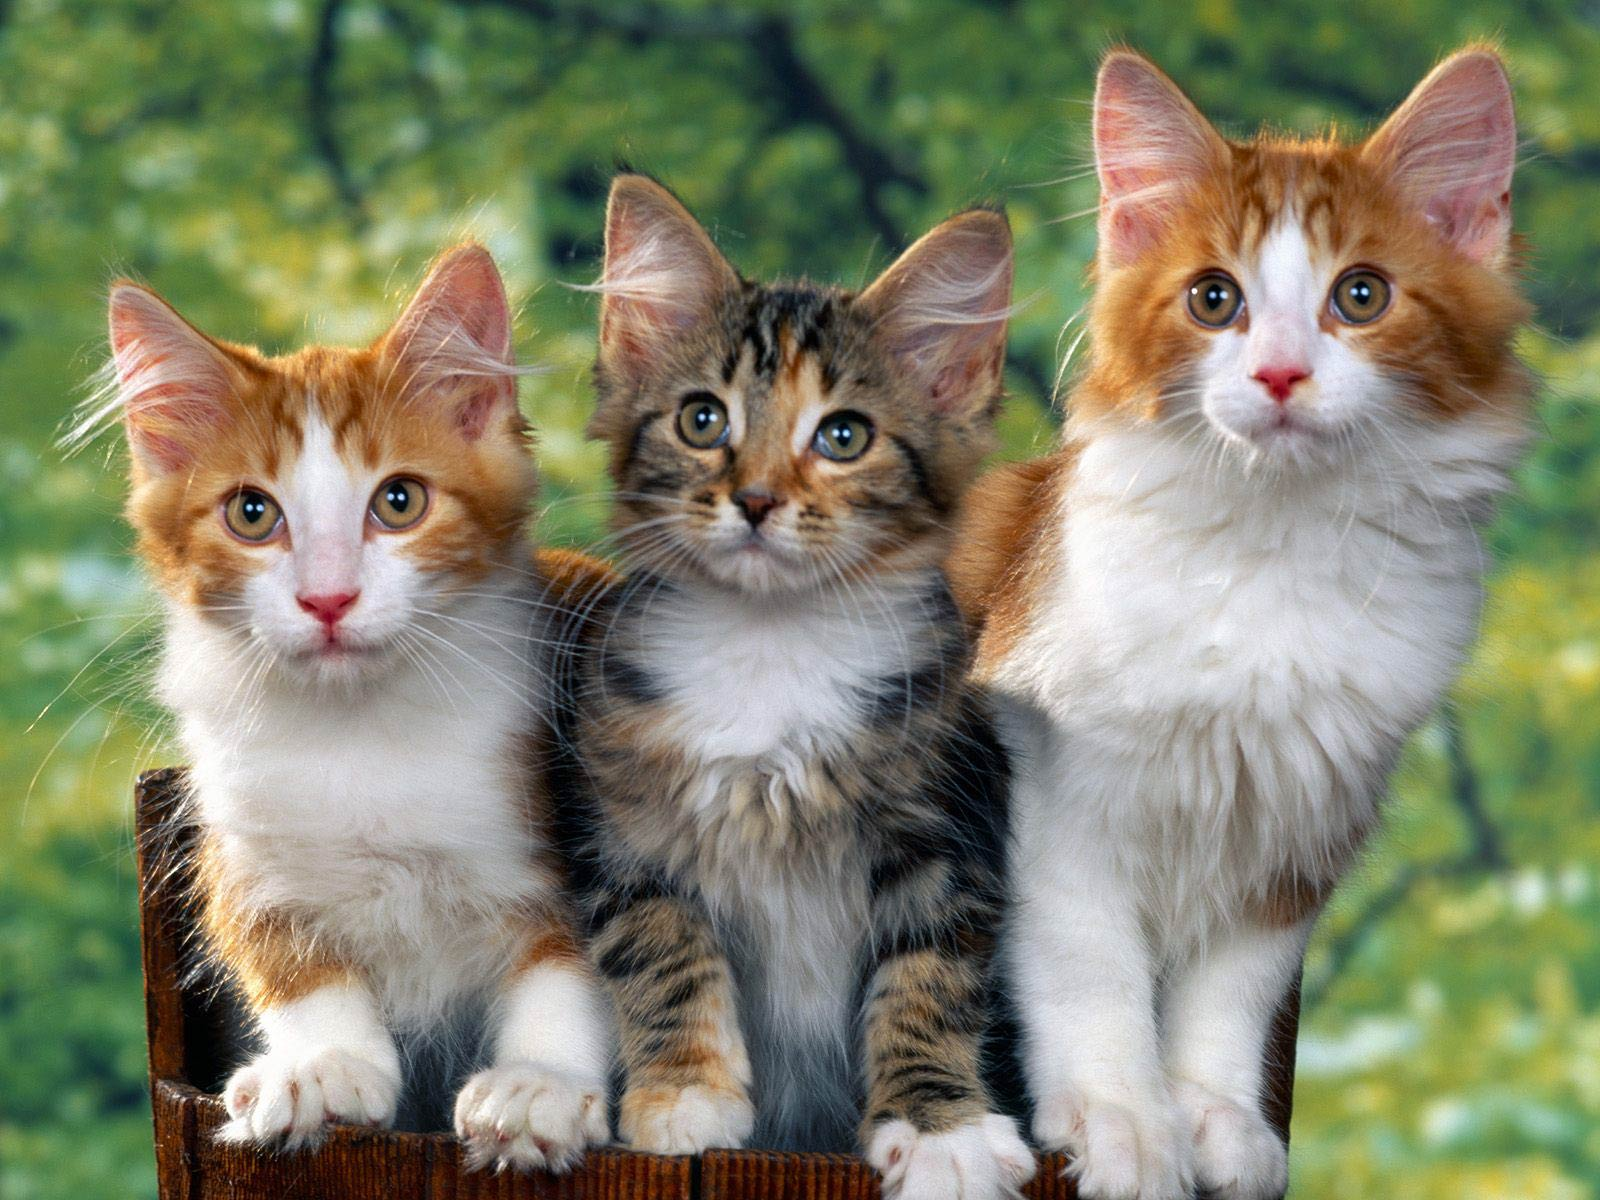 Cat Wallpaper   Animals Town free Cat wallpaper wallpapers download